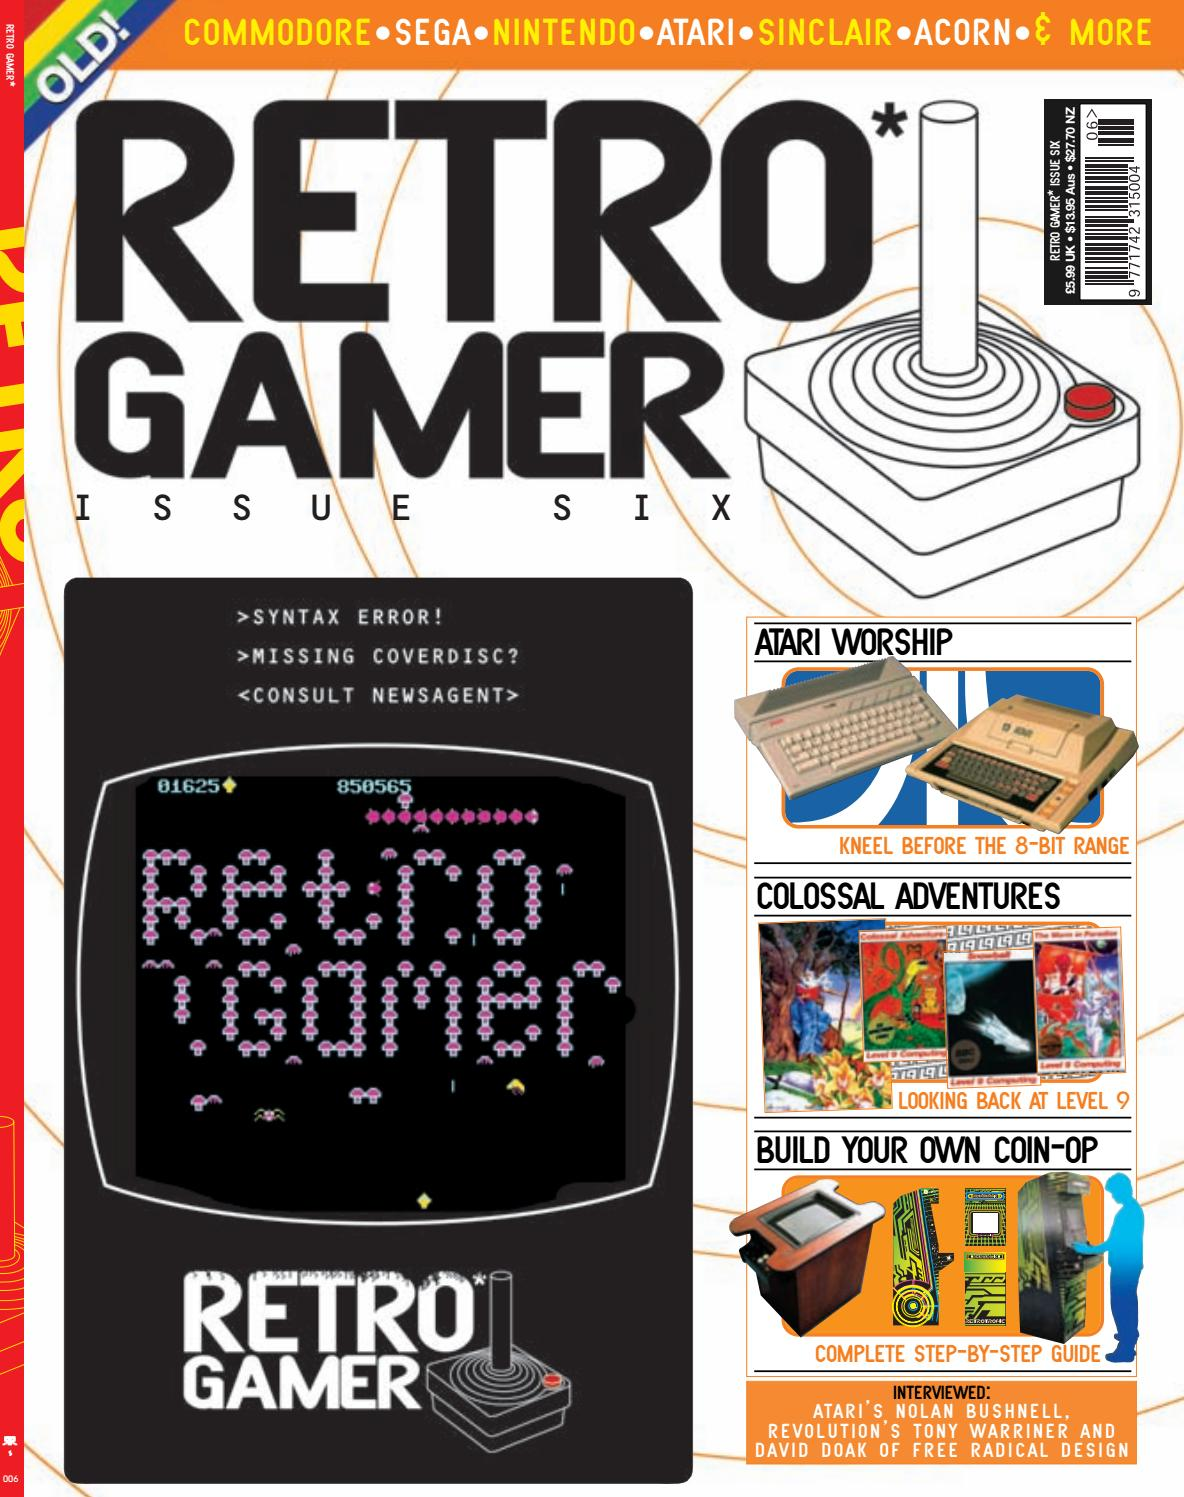 Retro Gamer nº 006 by Revistas Clássicas de Games - issuu